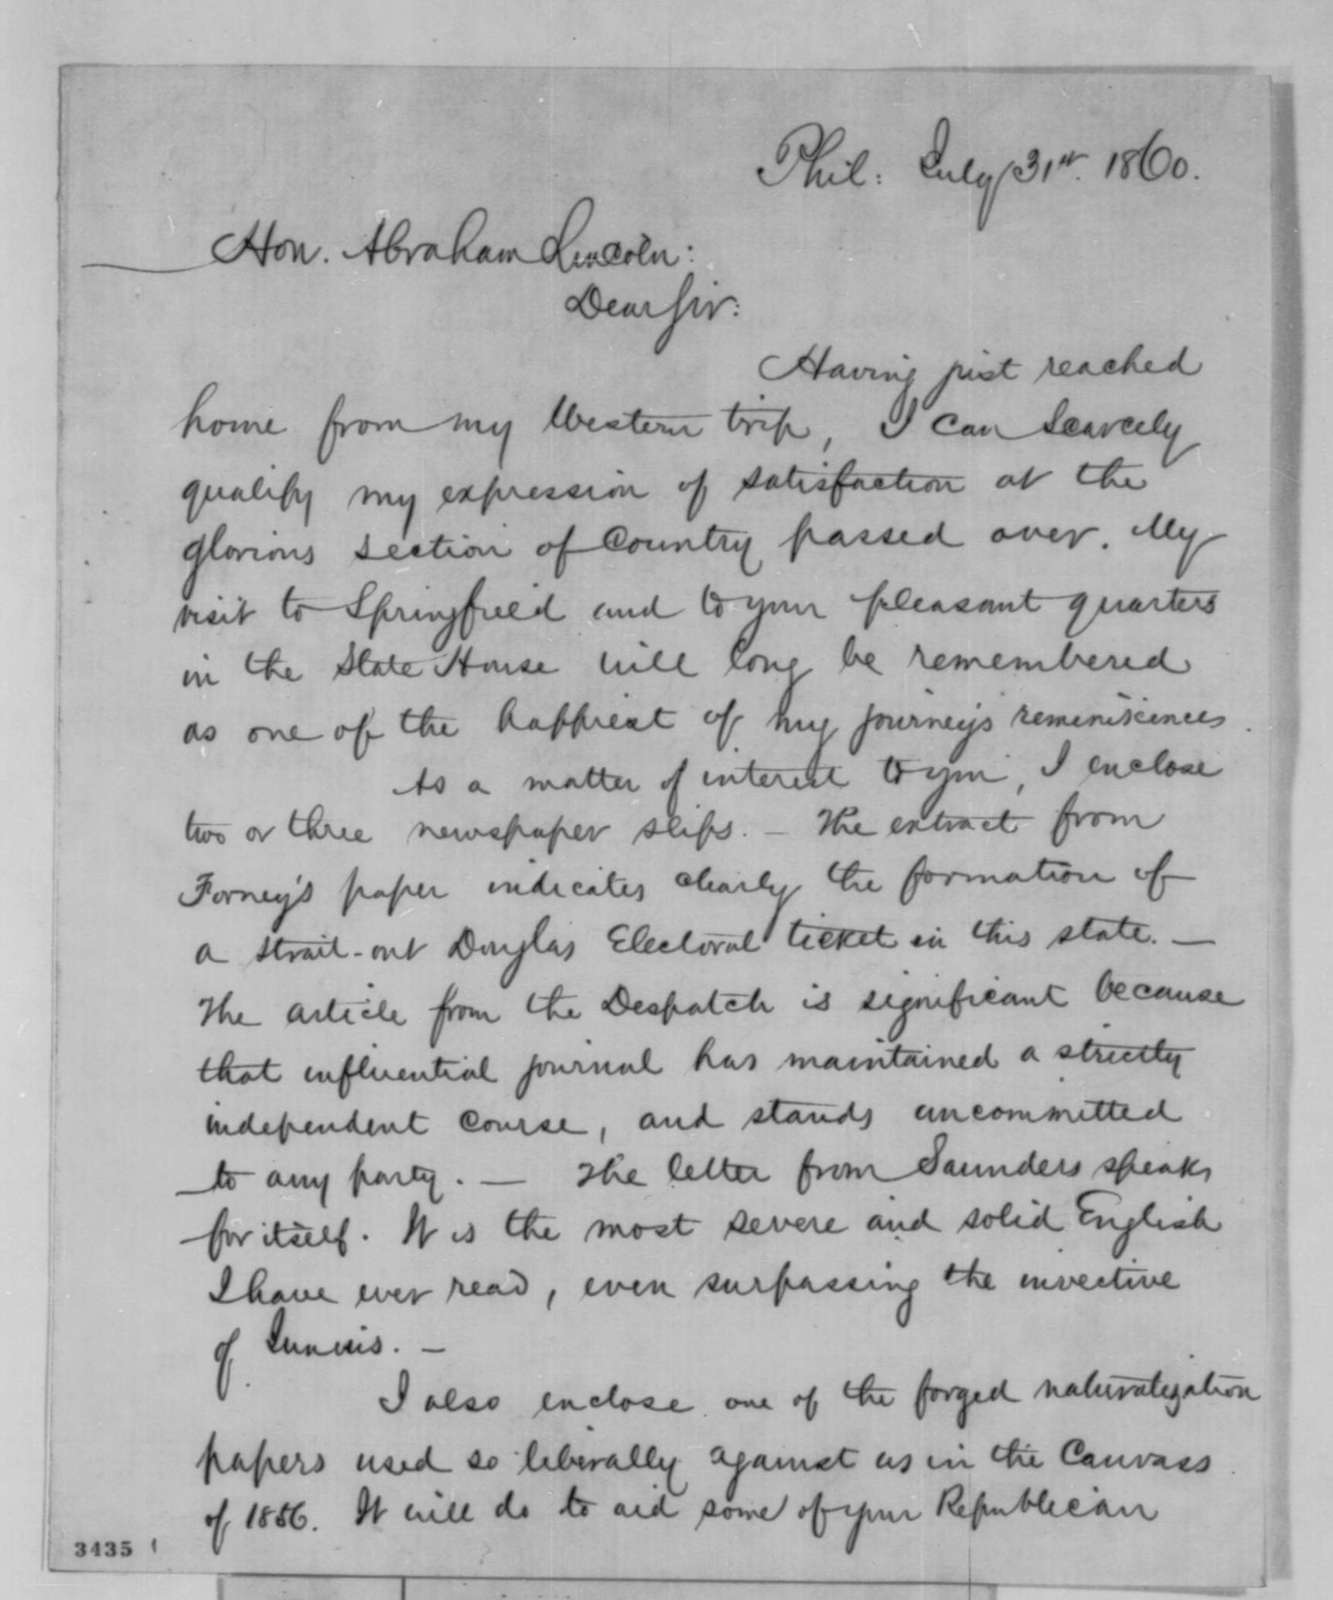 James Lesley Jr. to Abraham Lincoln, Tuesday, July 31, 1860  (Pennsylvania politics)